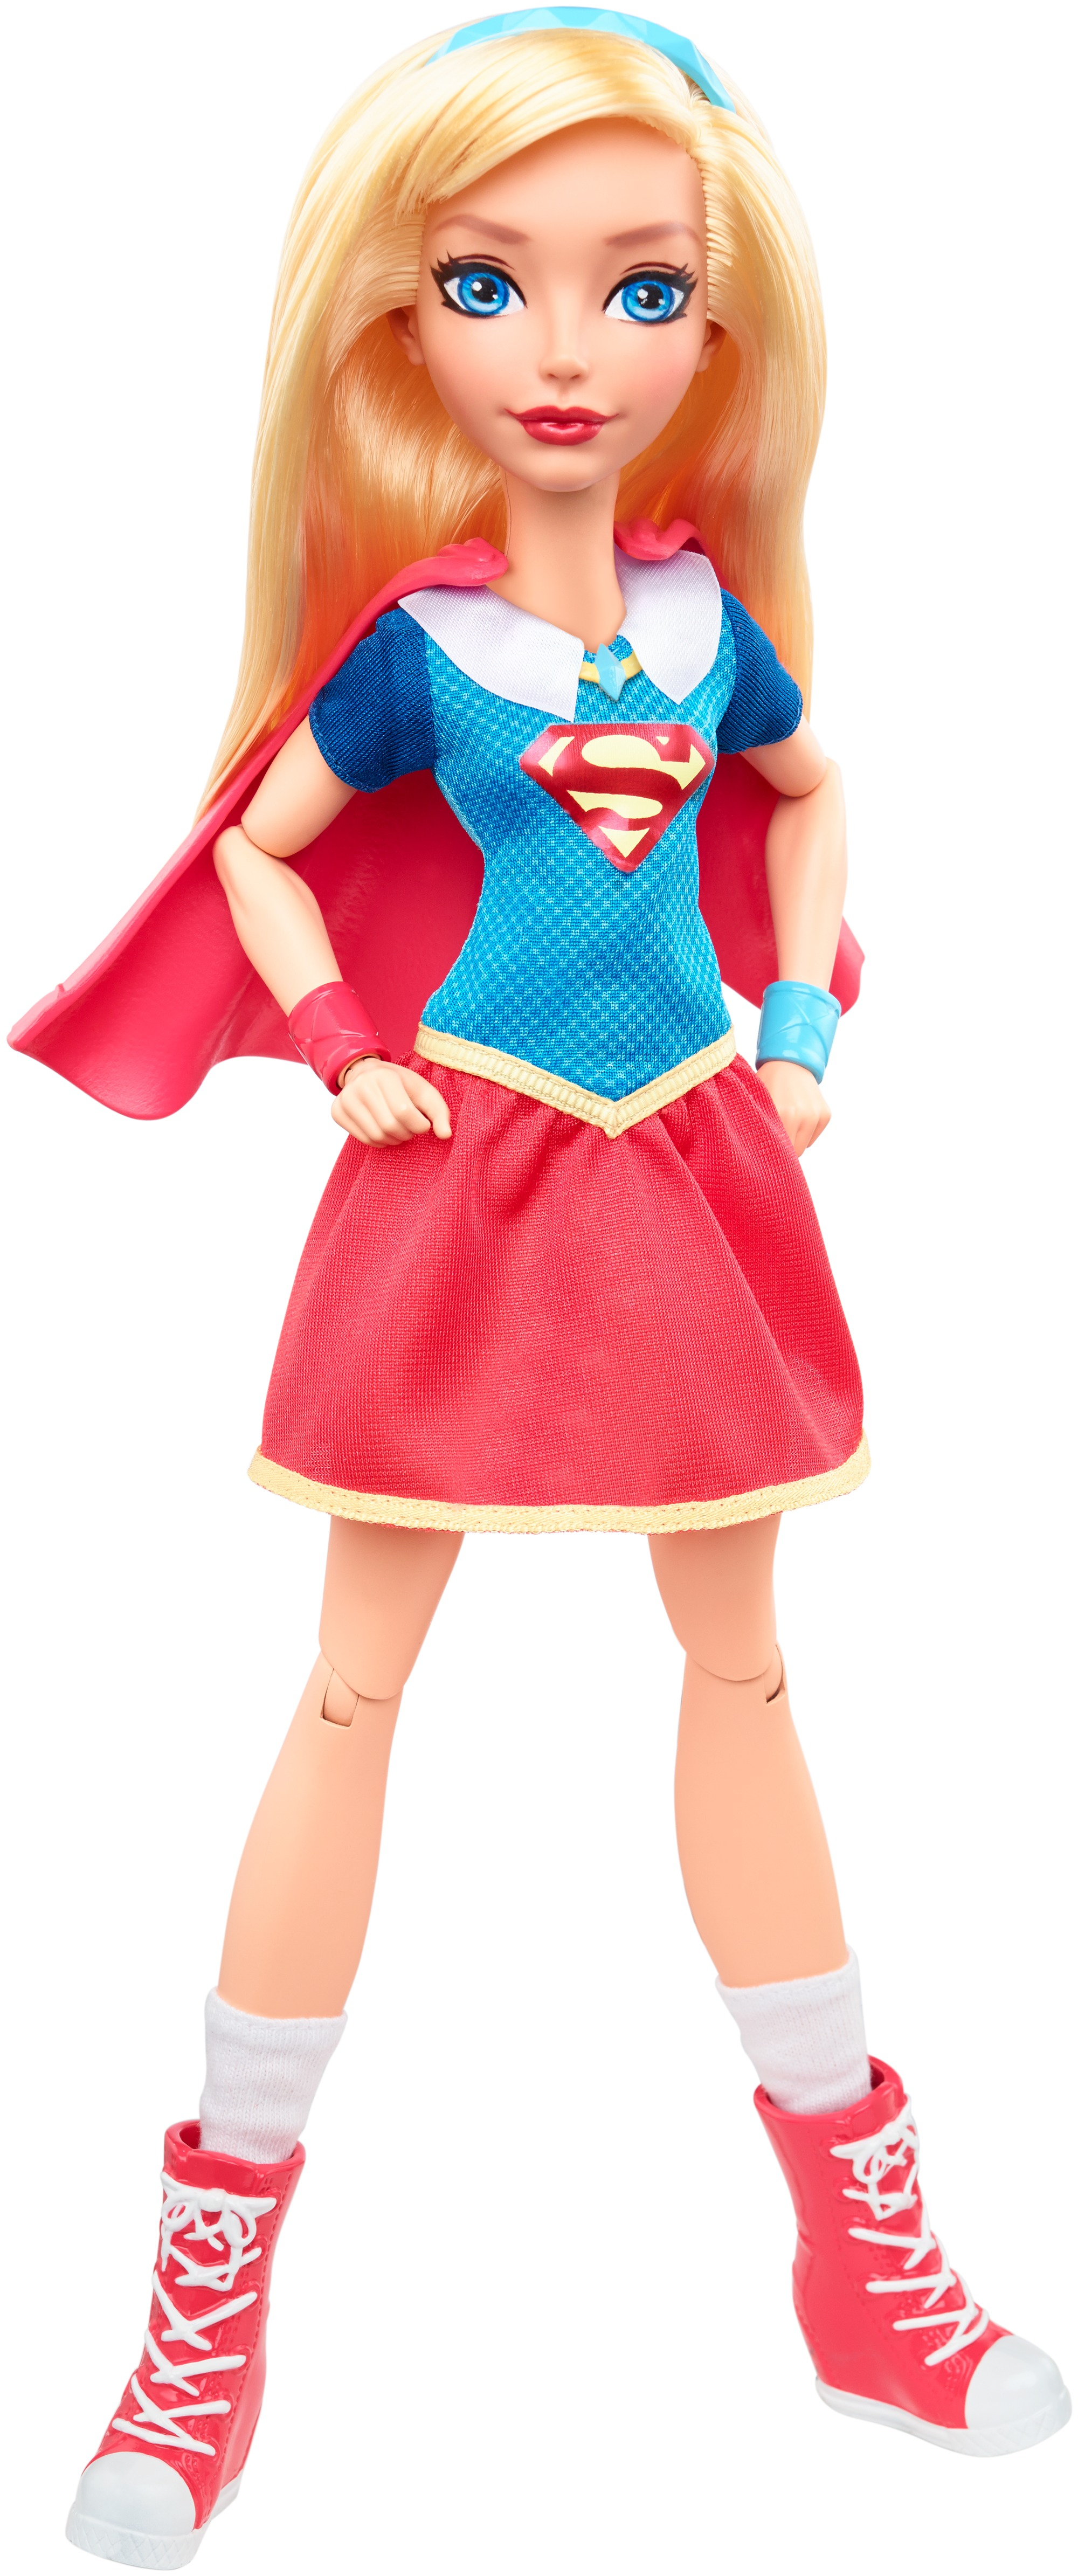 "DC Super Hero Girls Supergirl 12"" Action Doll by MATTEL INC."